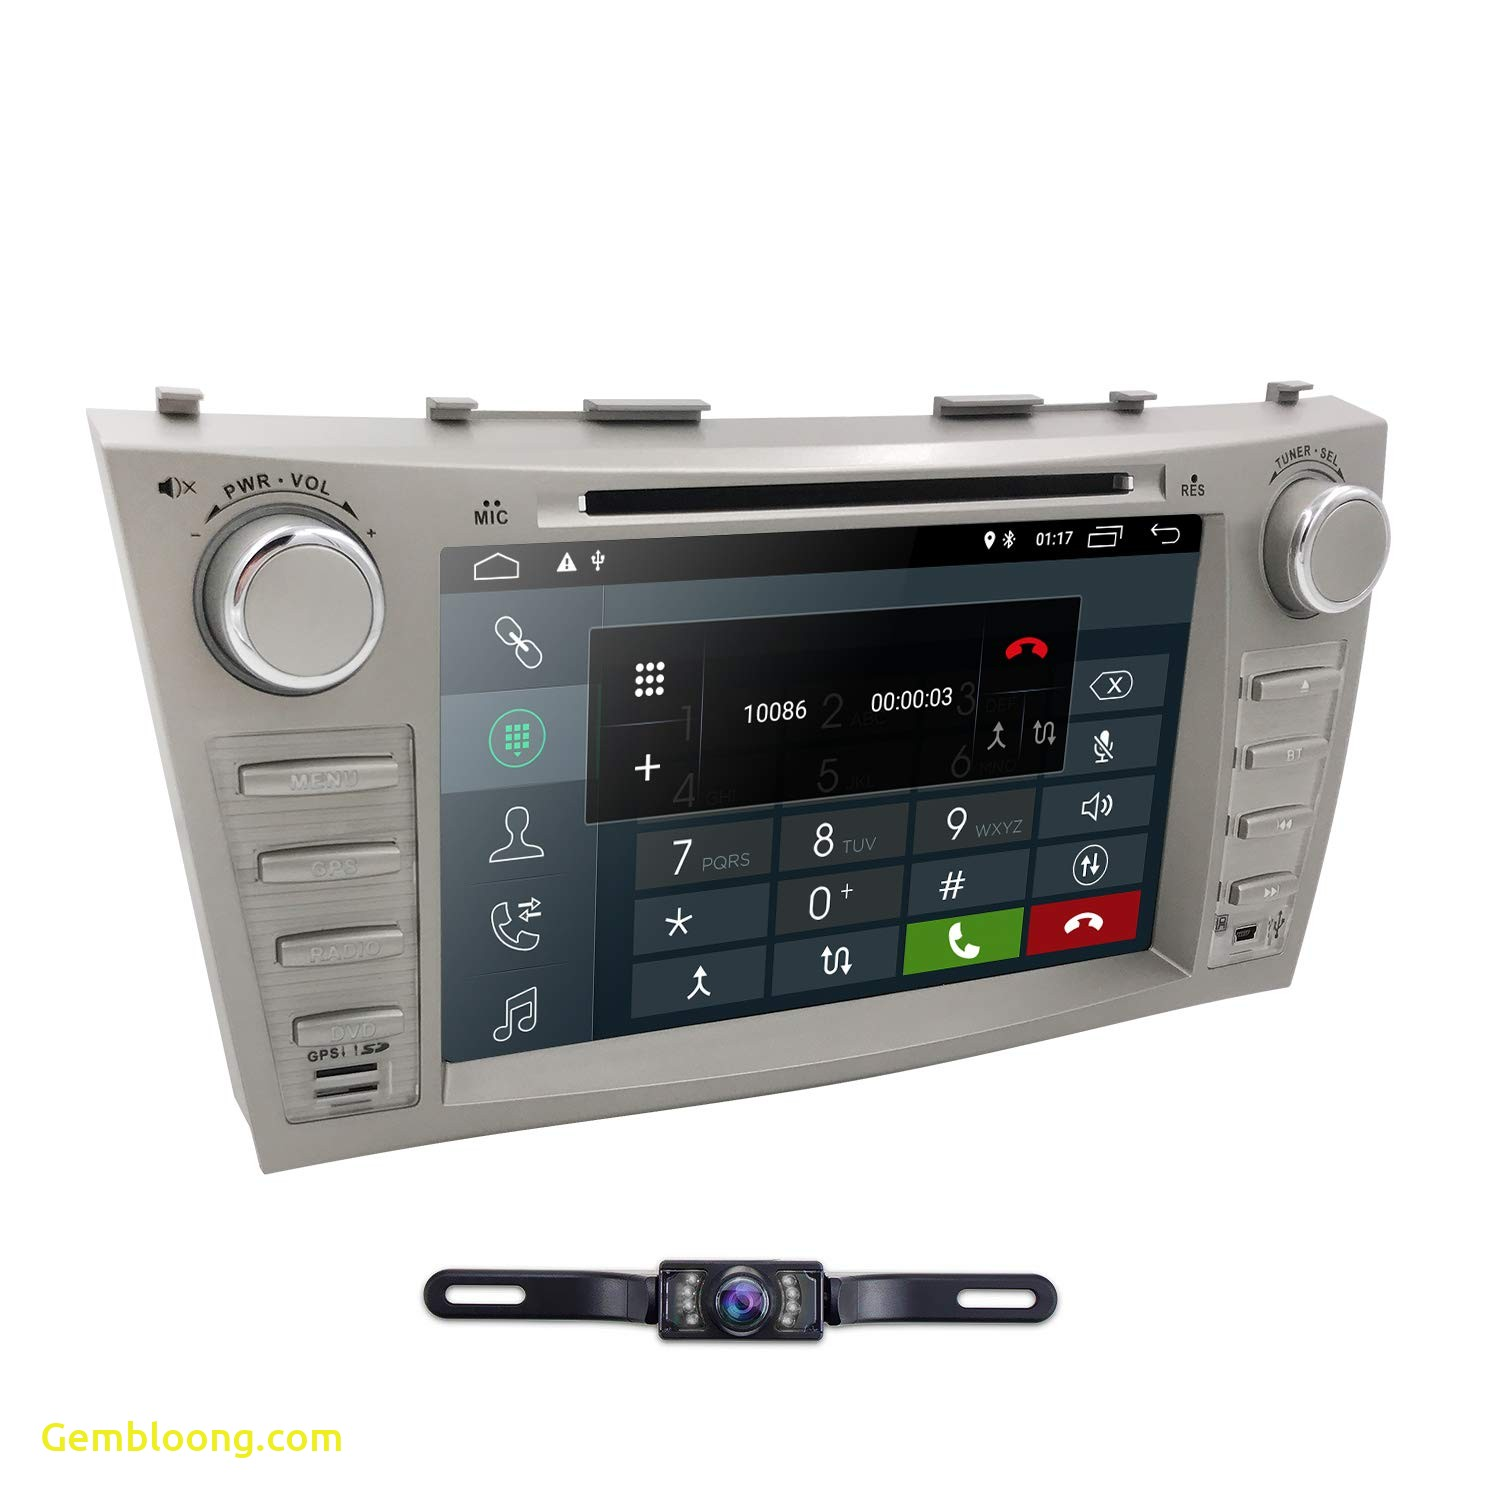 2009 toyota Camry Beautiful Hizpo Car Dvd Player for toyota Camry 2007 2008 2009